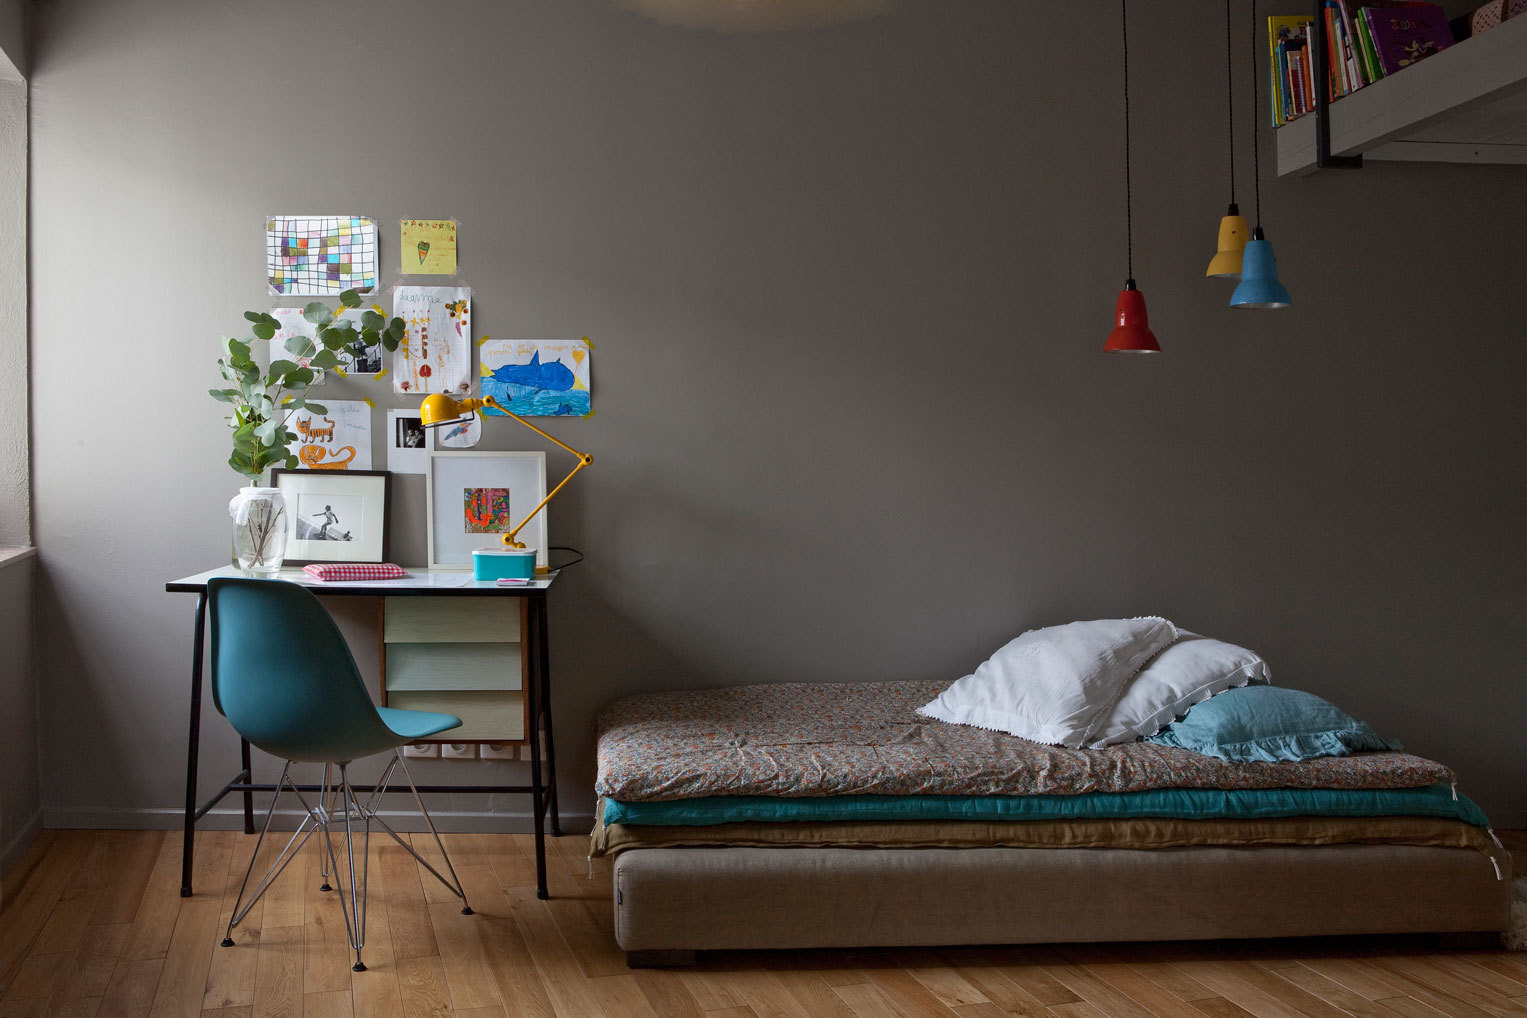 A child's room is filled with secondhand furnishings and vintage pieces in warm shades.